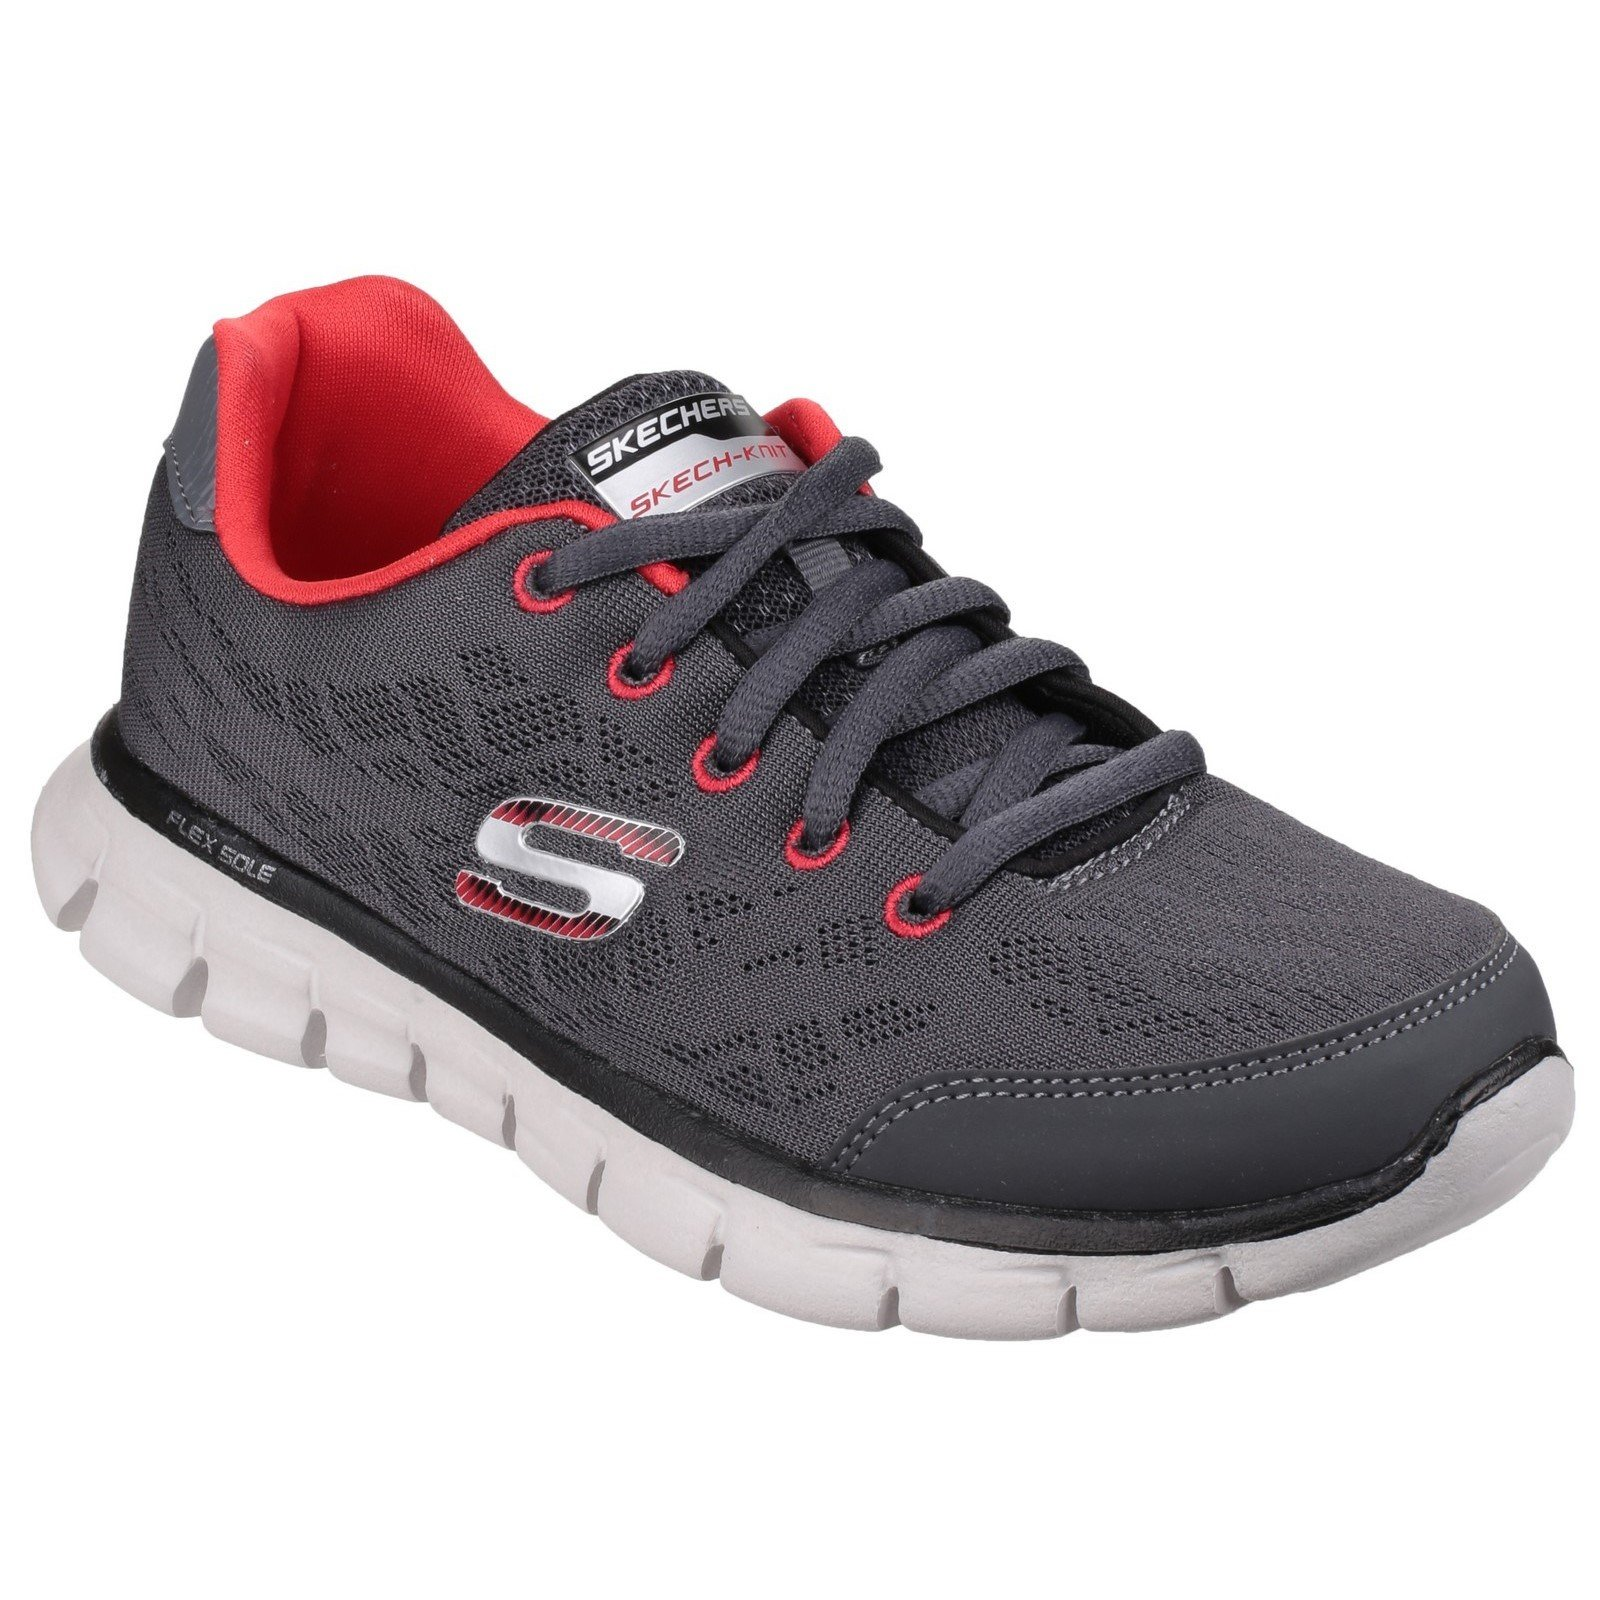 Skechers Kid's Synergy Fine Tune Lace up Trainer Multicolor 23918 - Grey/Red 4